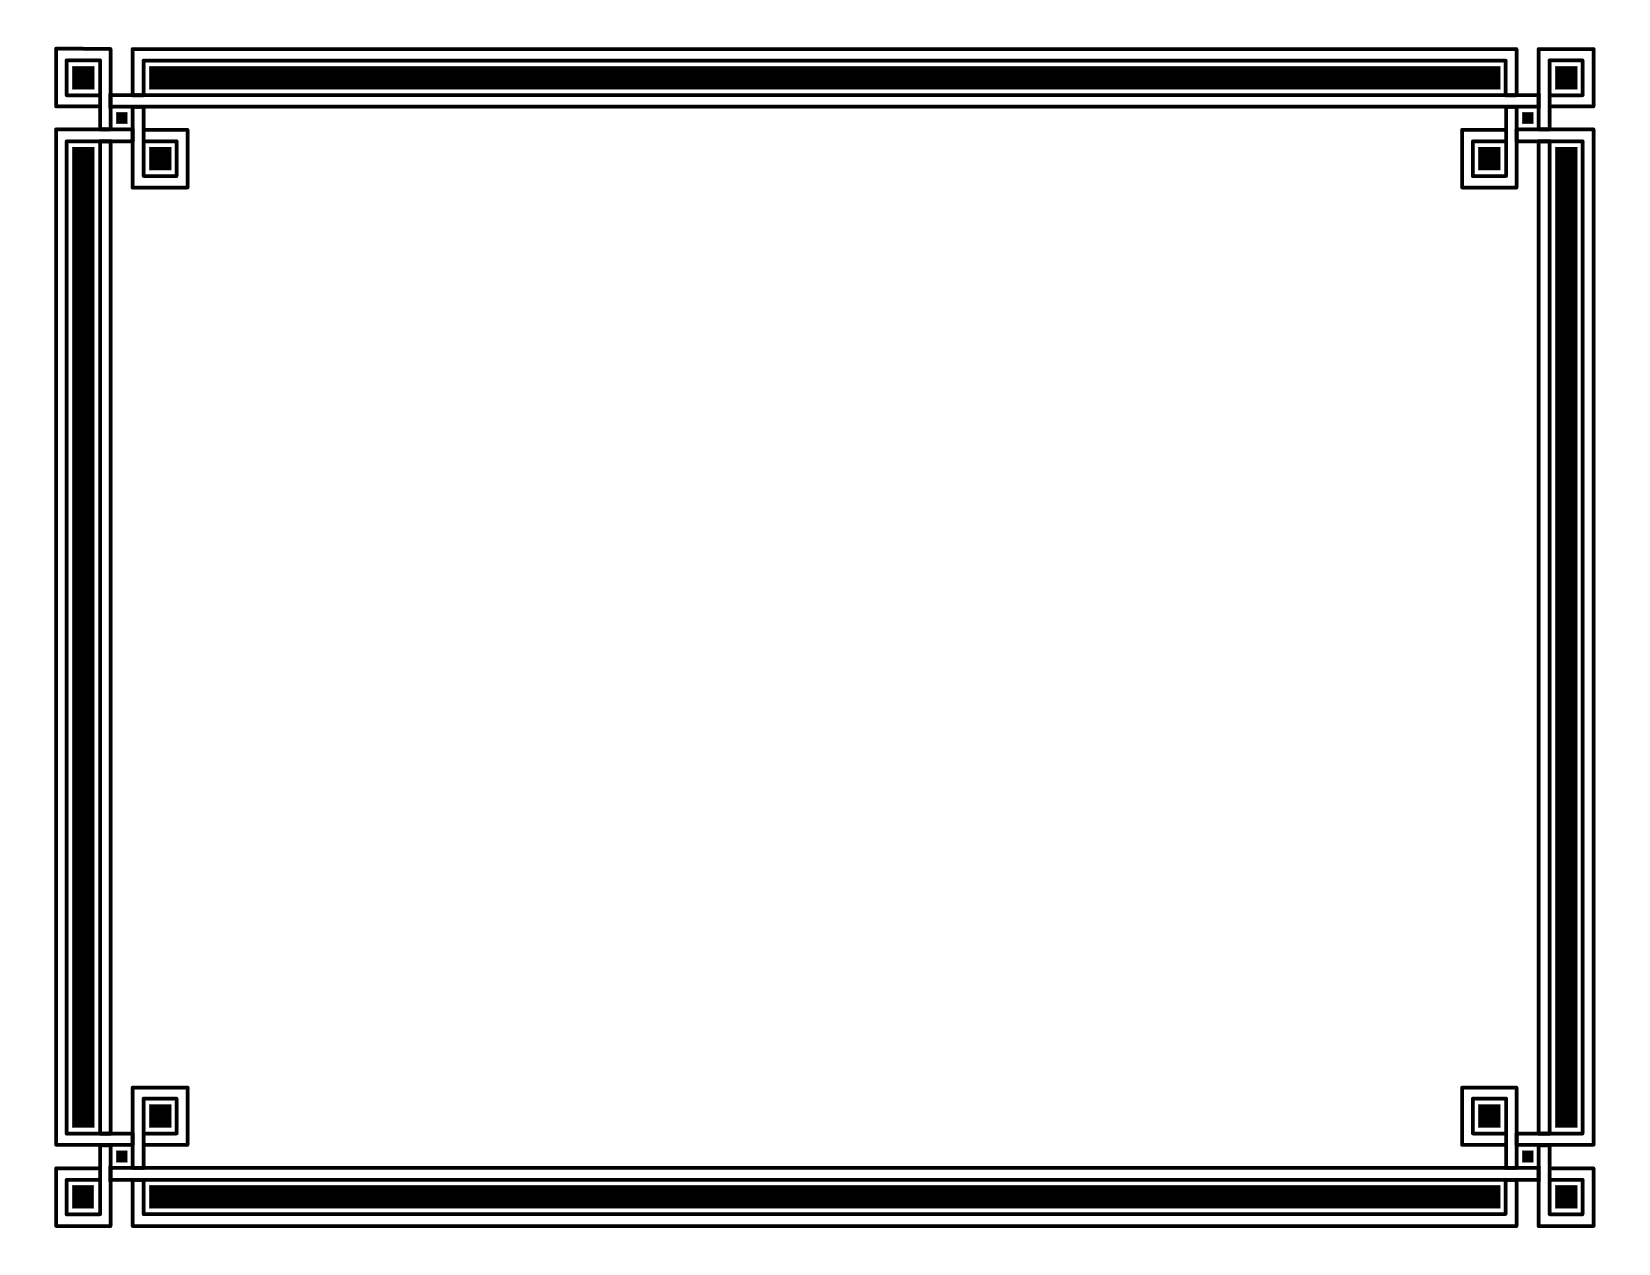 Certificate Borders And Frames Templates Amtframe